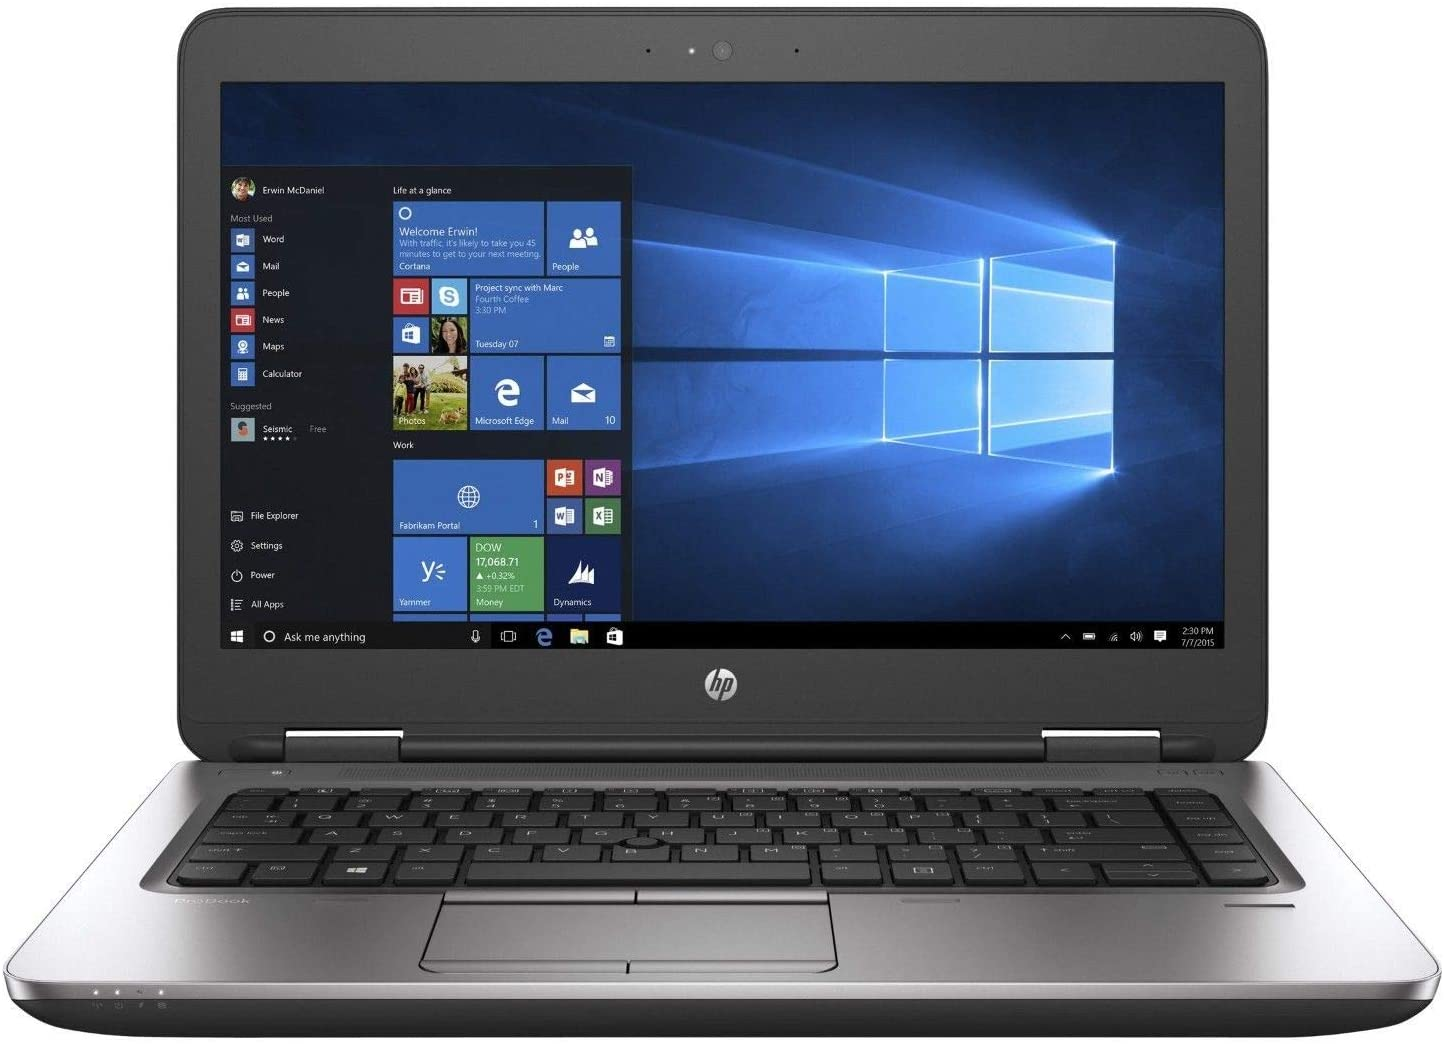 "HP EliteBook 640 G2 NoteBook, Intel Core-i5 6300U 2.4 to 3.0Ghz, 16Gb DDR4/3  Ram, 256Gb SSD, No Optical, GbNic, WiFi AC, 14"" Wide Screen,  WebCam Windows 10 Pro 64Bit-- 1 Year TTE.CA Hardware Warranty -- 30 Day Battery Warranty"